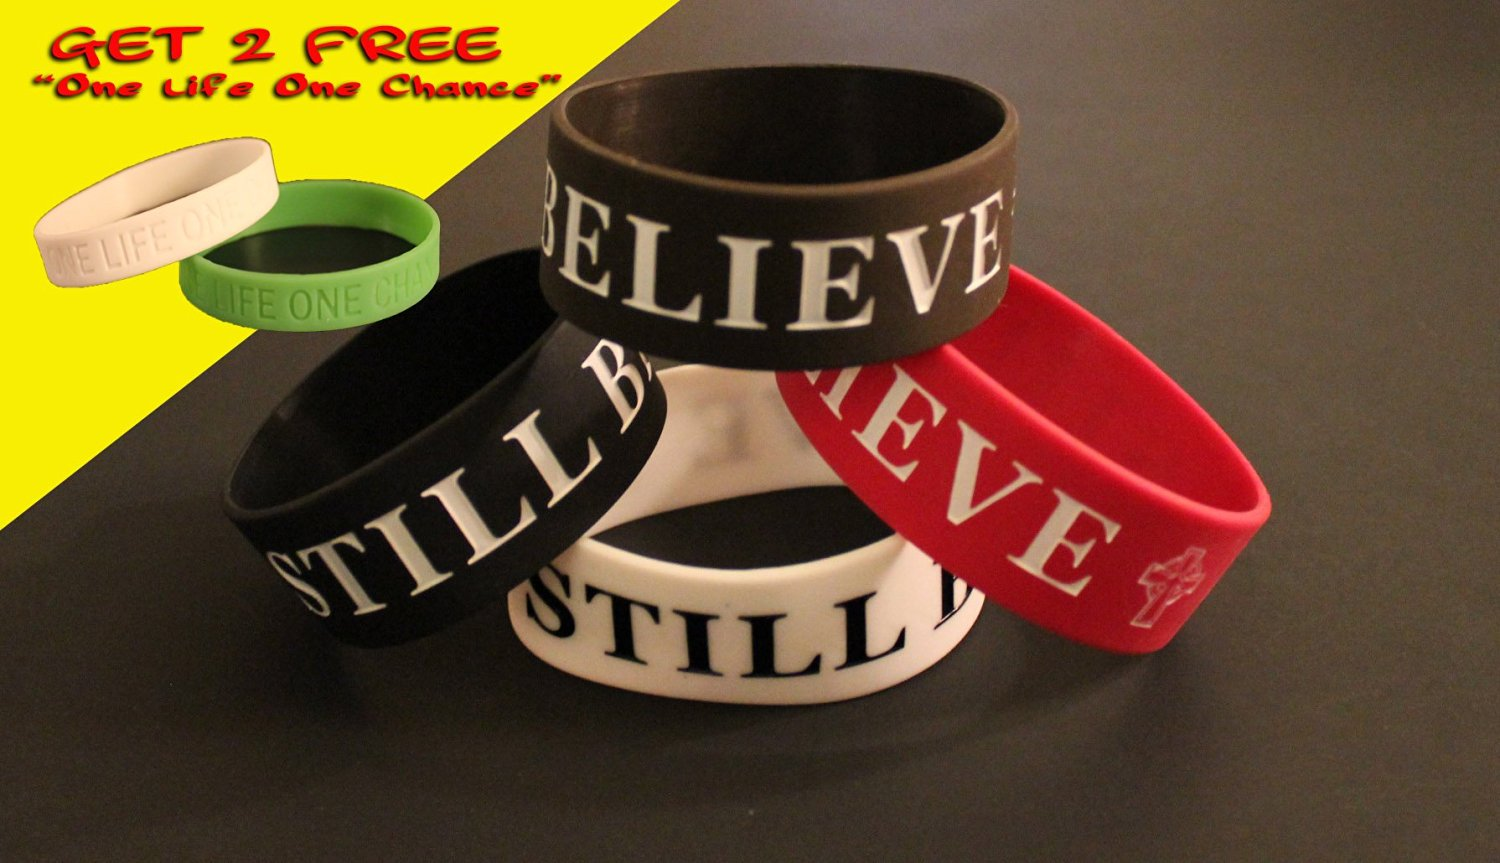 "FREE 2 ONE LIFE ONE CHANCE w/ purchase of this (4PK) ""STILL BELIEVE"" saying Silicon Bracelet 1""INCH **ORIGINAL DESIGN BY TIFEPIPHANY**"